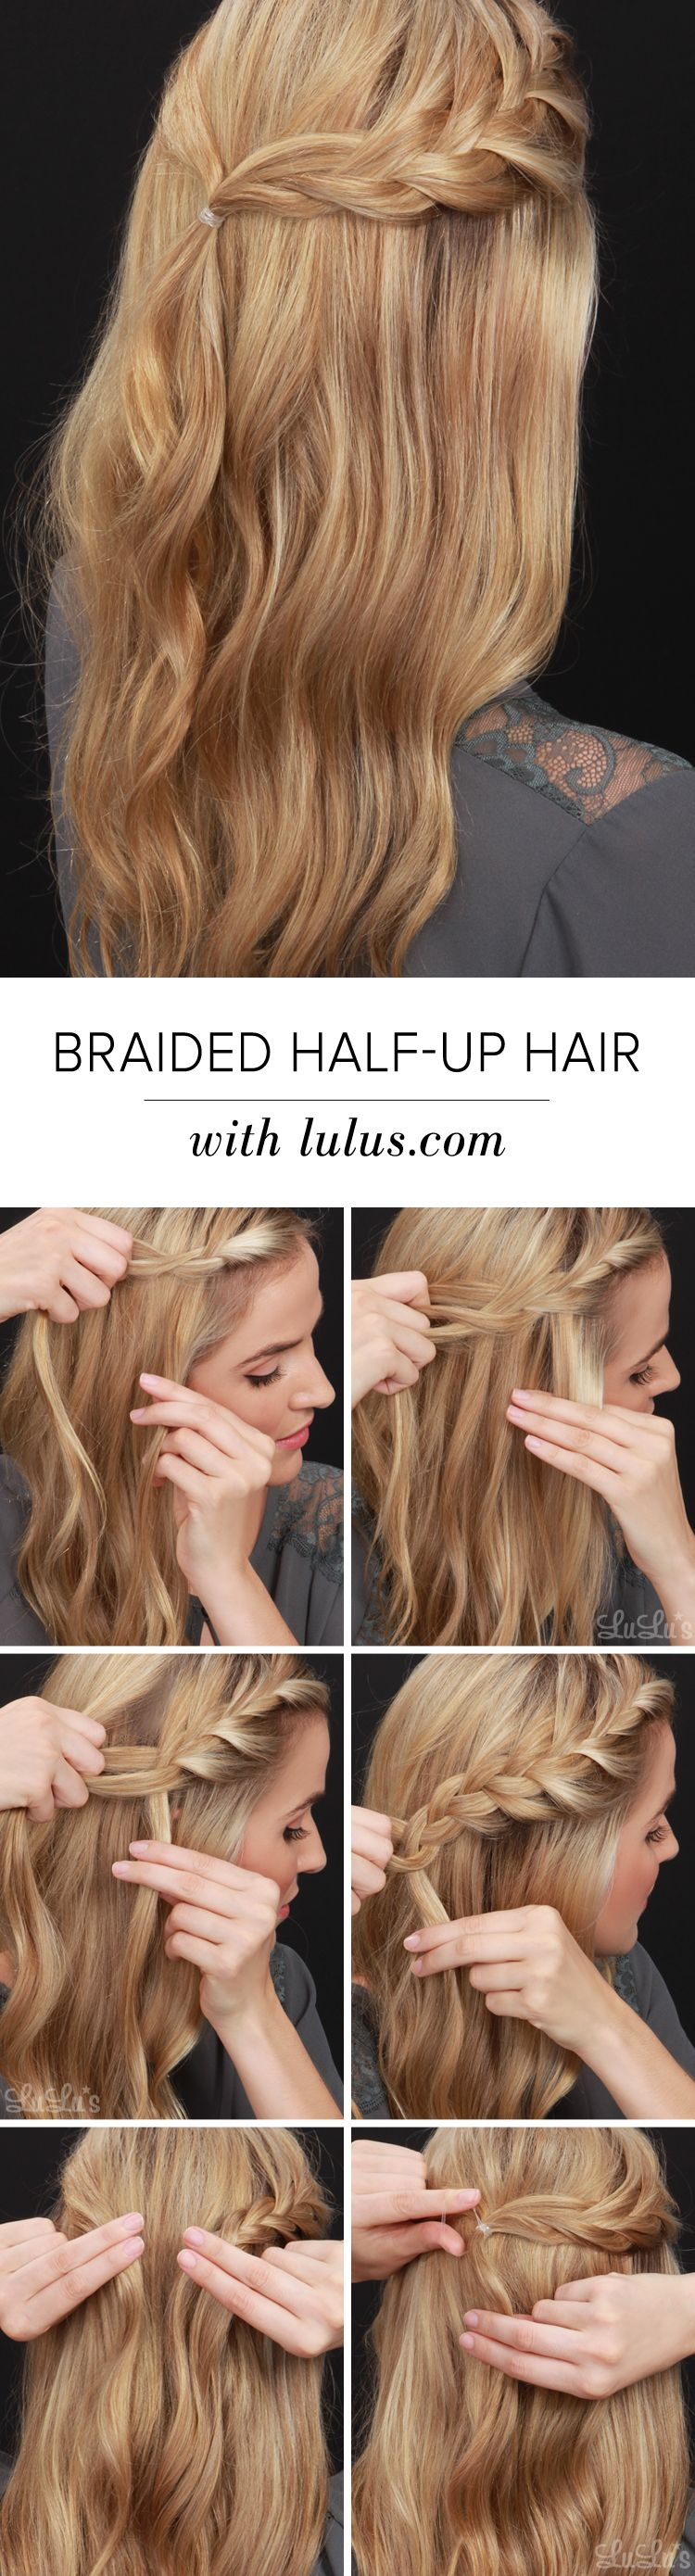 Lulus How To Half Up Braided Hair Tutorial